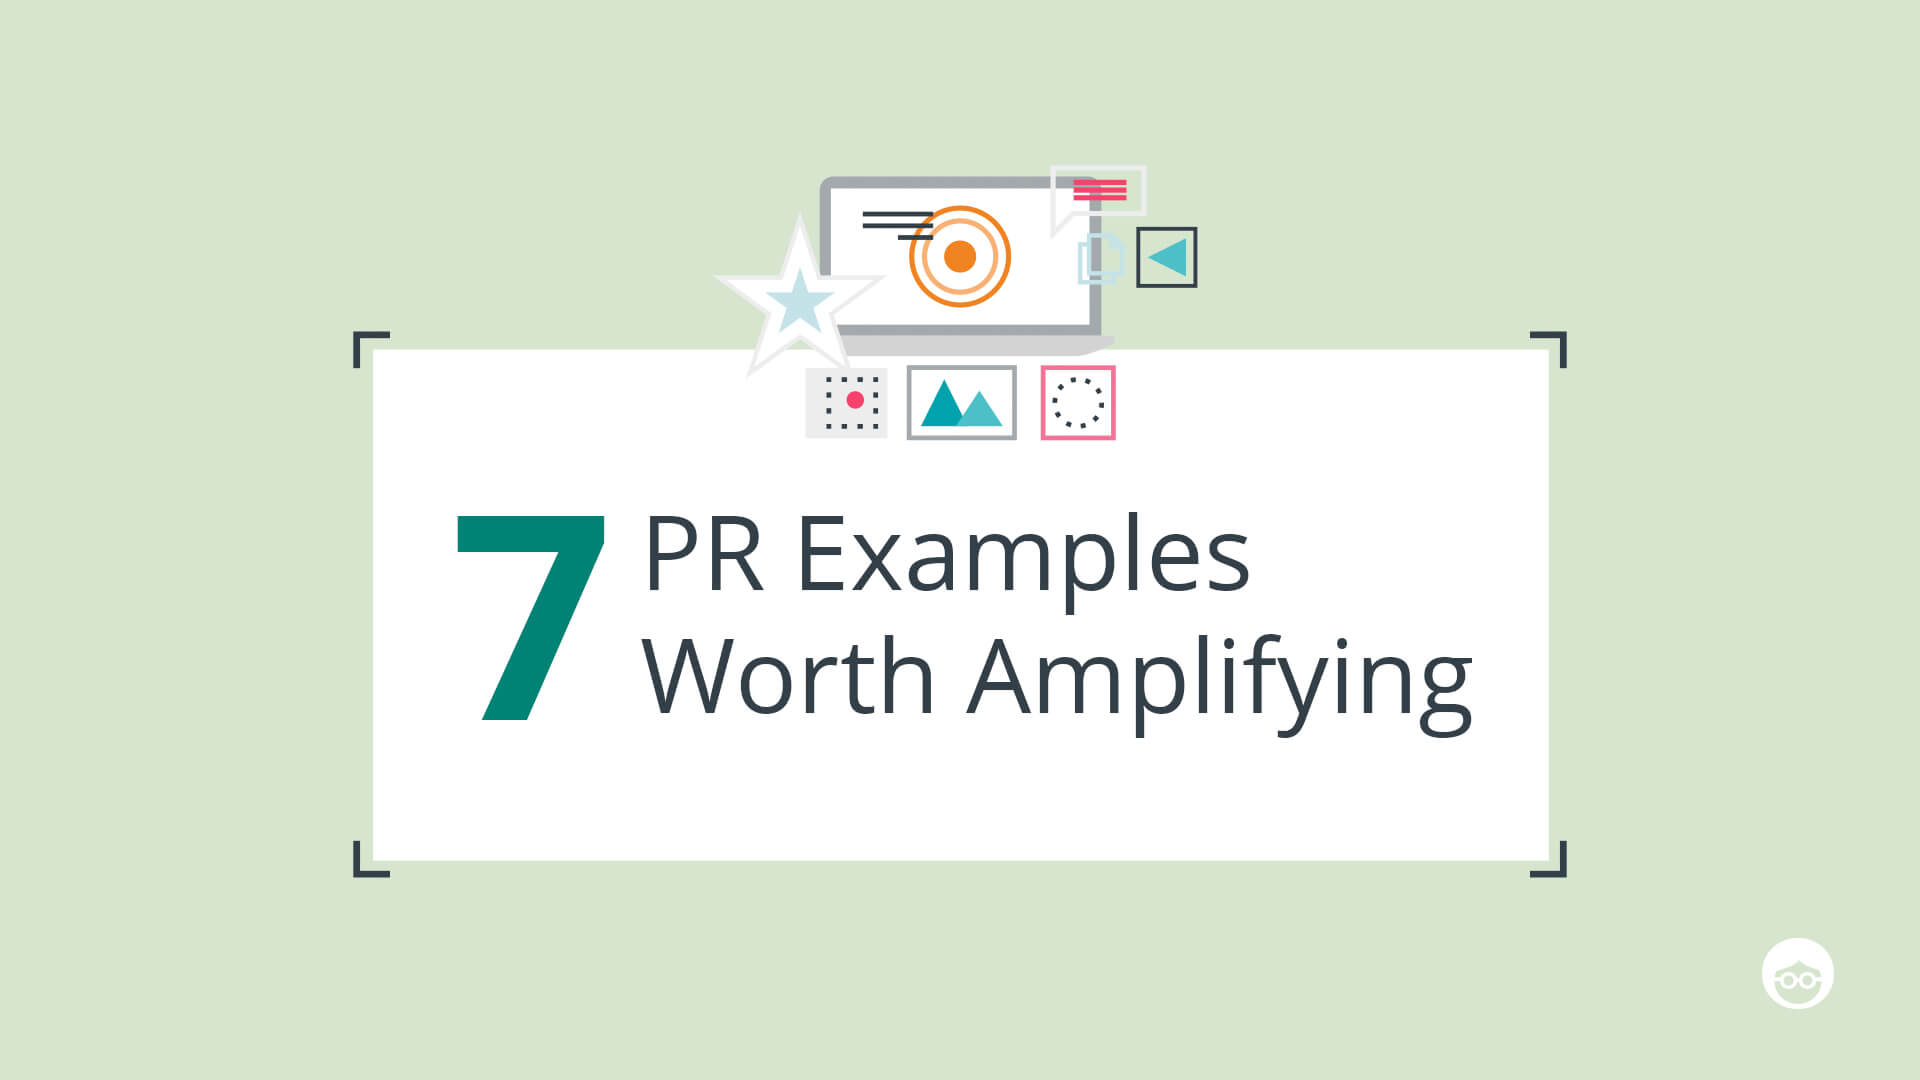 7 PR Examples Worth Amplifying